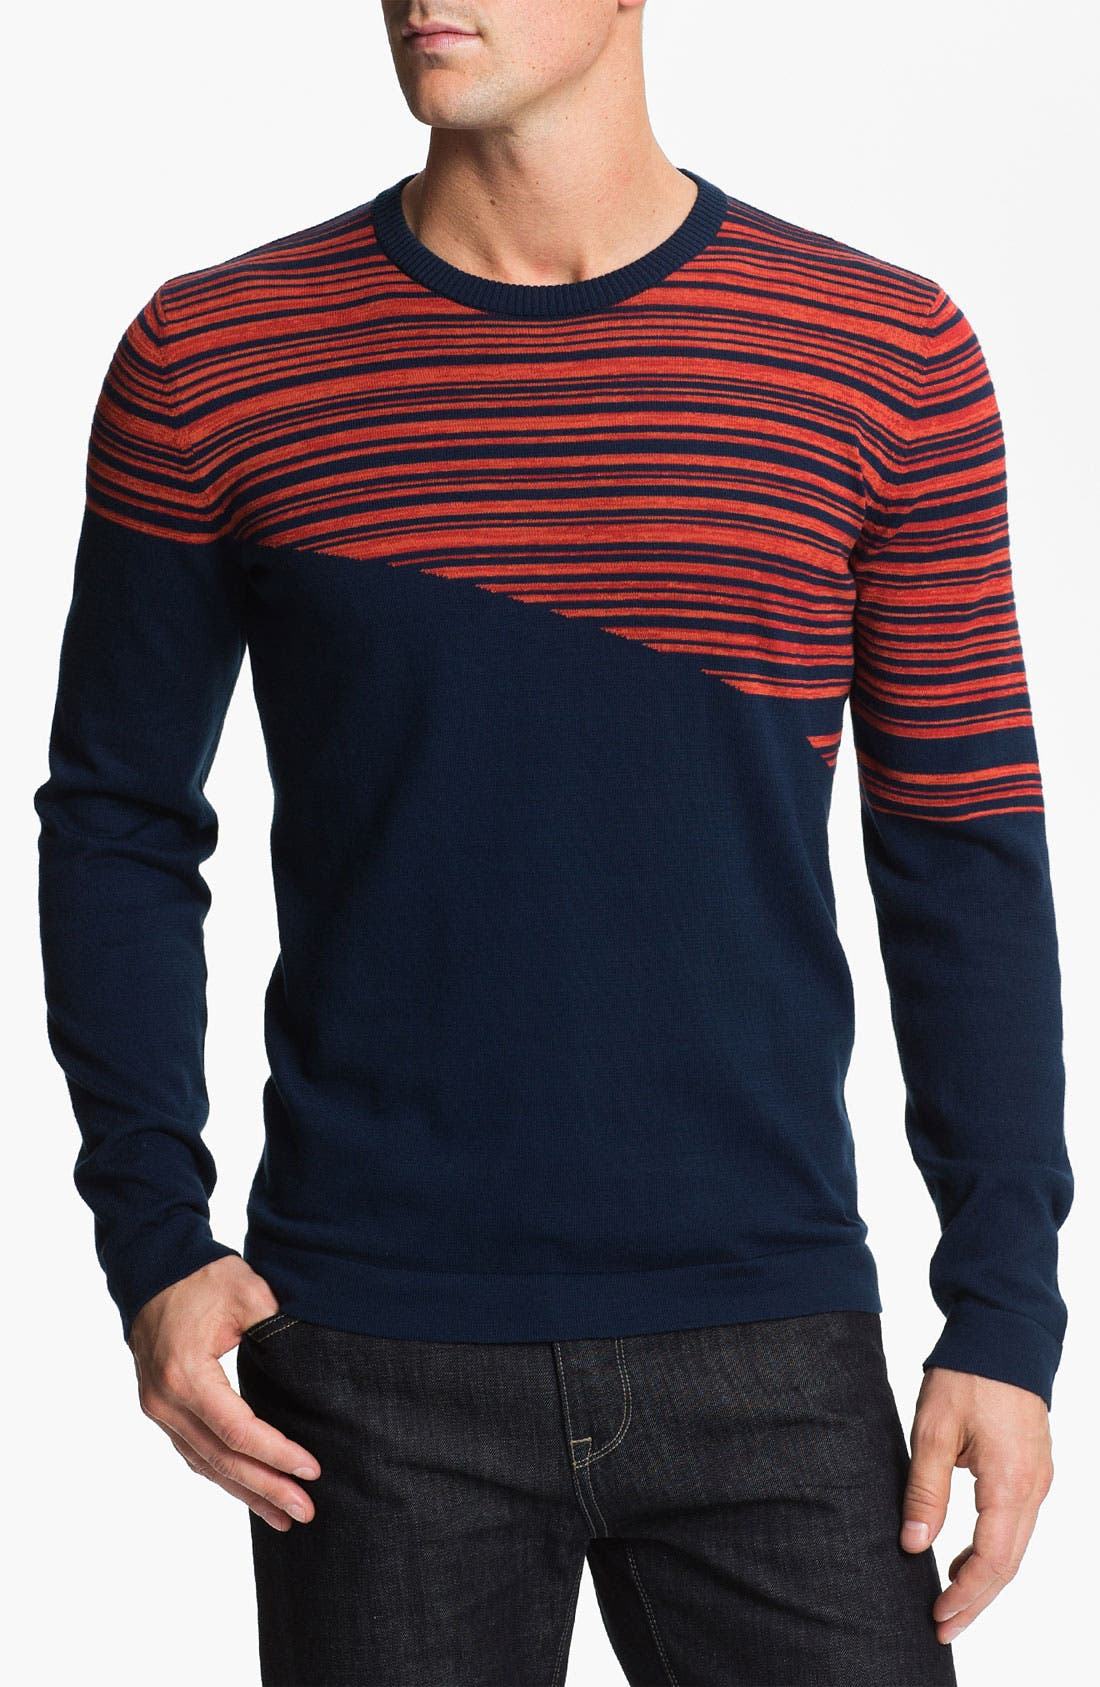 Alternate Image 1 Selected - HUGO 'Salamis' Crewneck Sweater